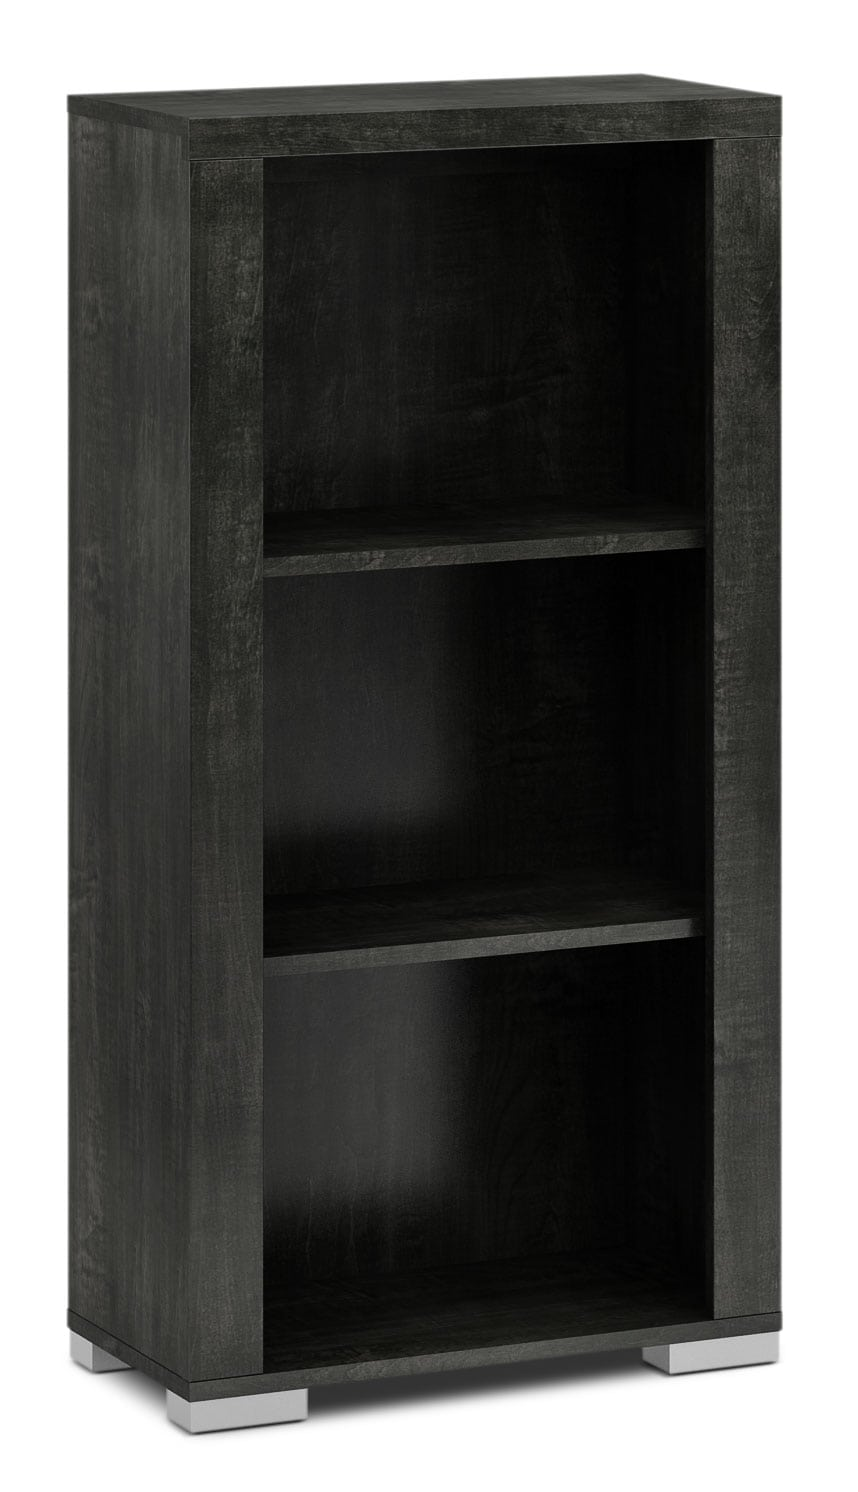 Lexington Bookcase